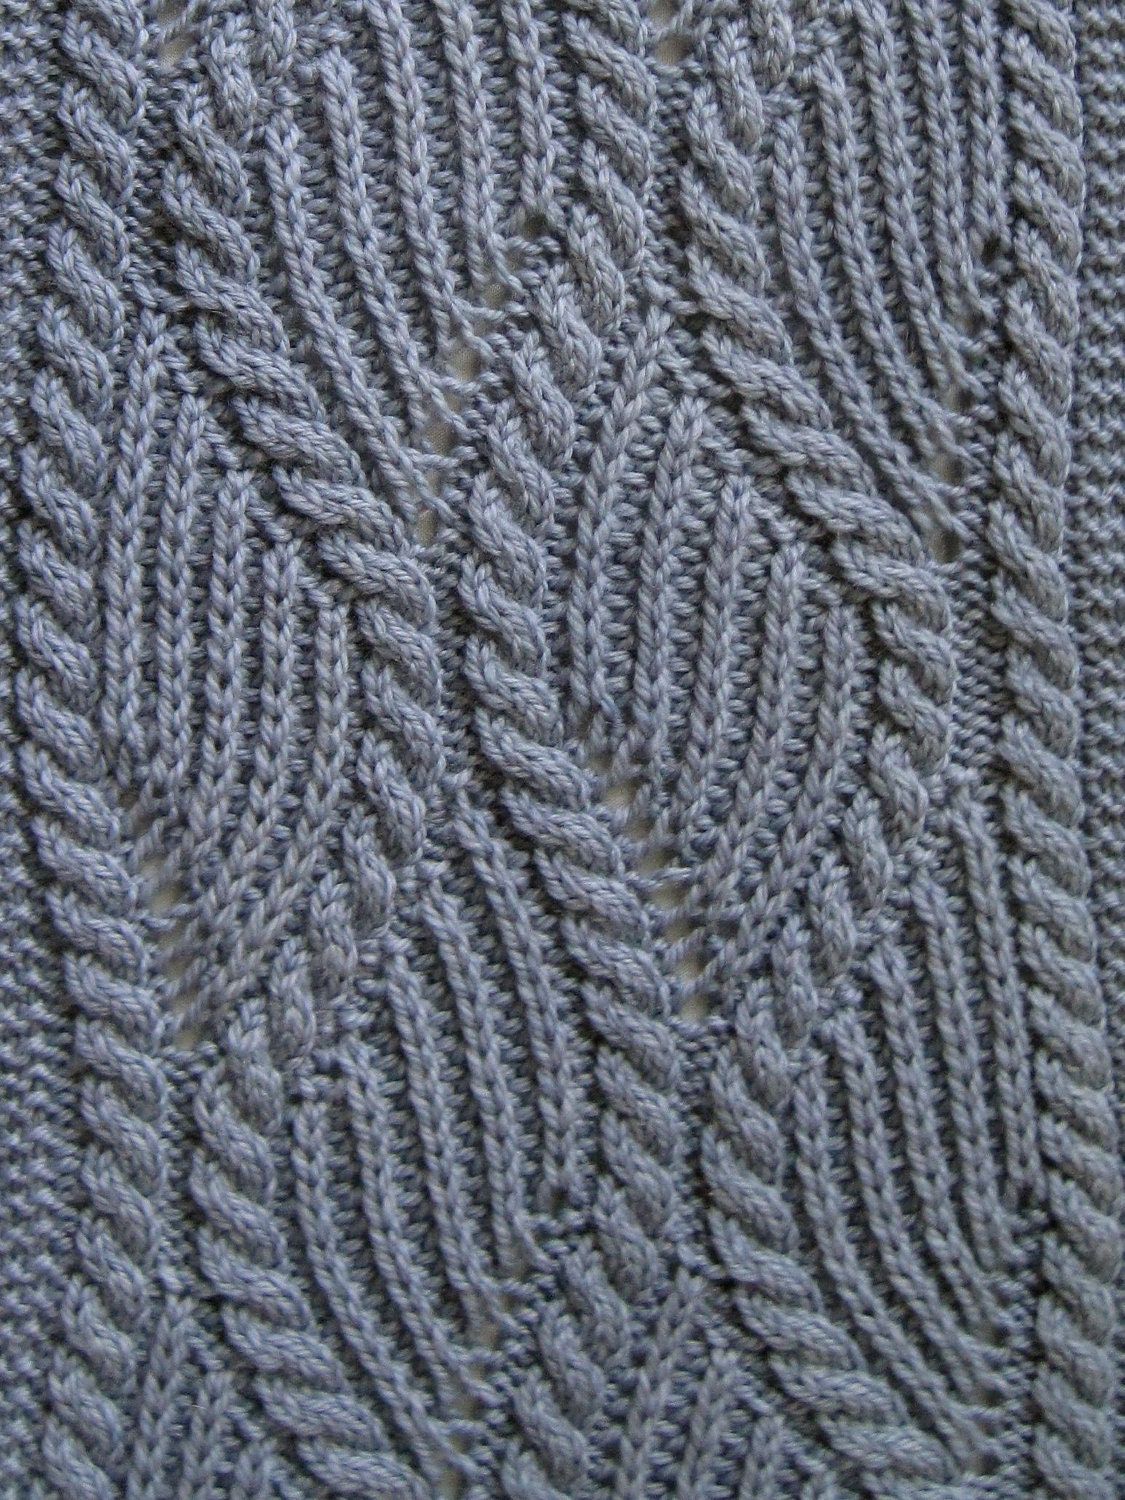 Cable Knitting Stitches Patterns : Knit Scarf Pattern: Brioche and Traveling Cable Knitting